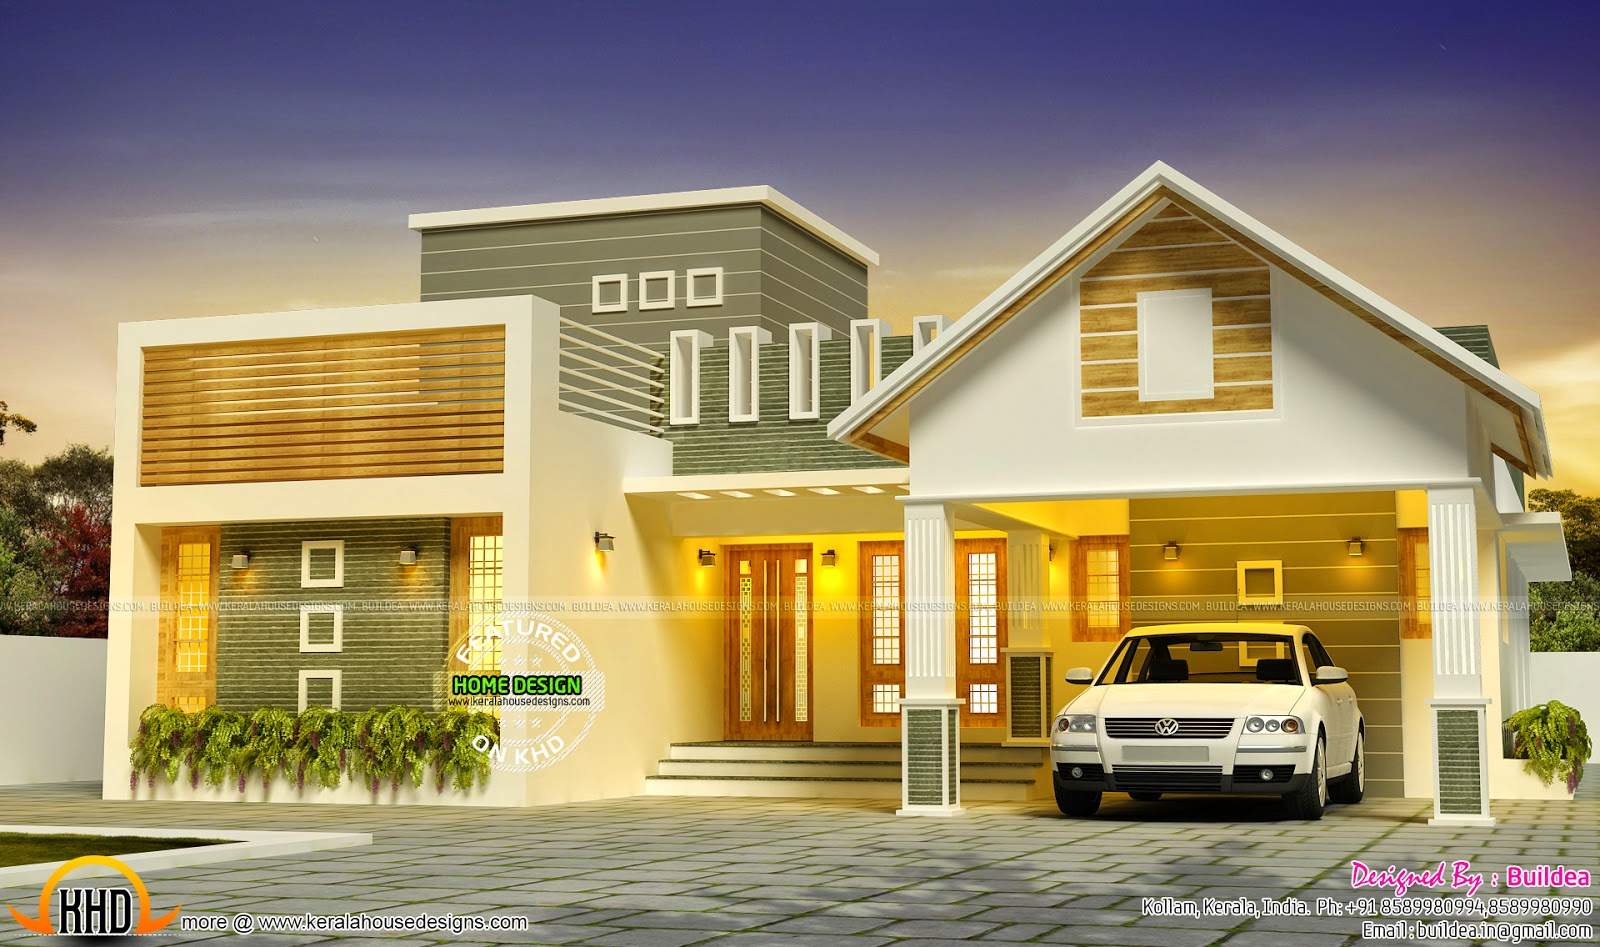 Awesome Dream Home Design Kerala Home Design And Floor Plans